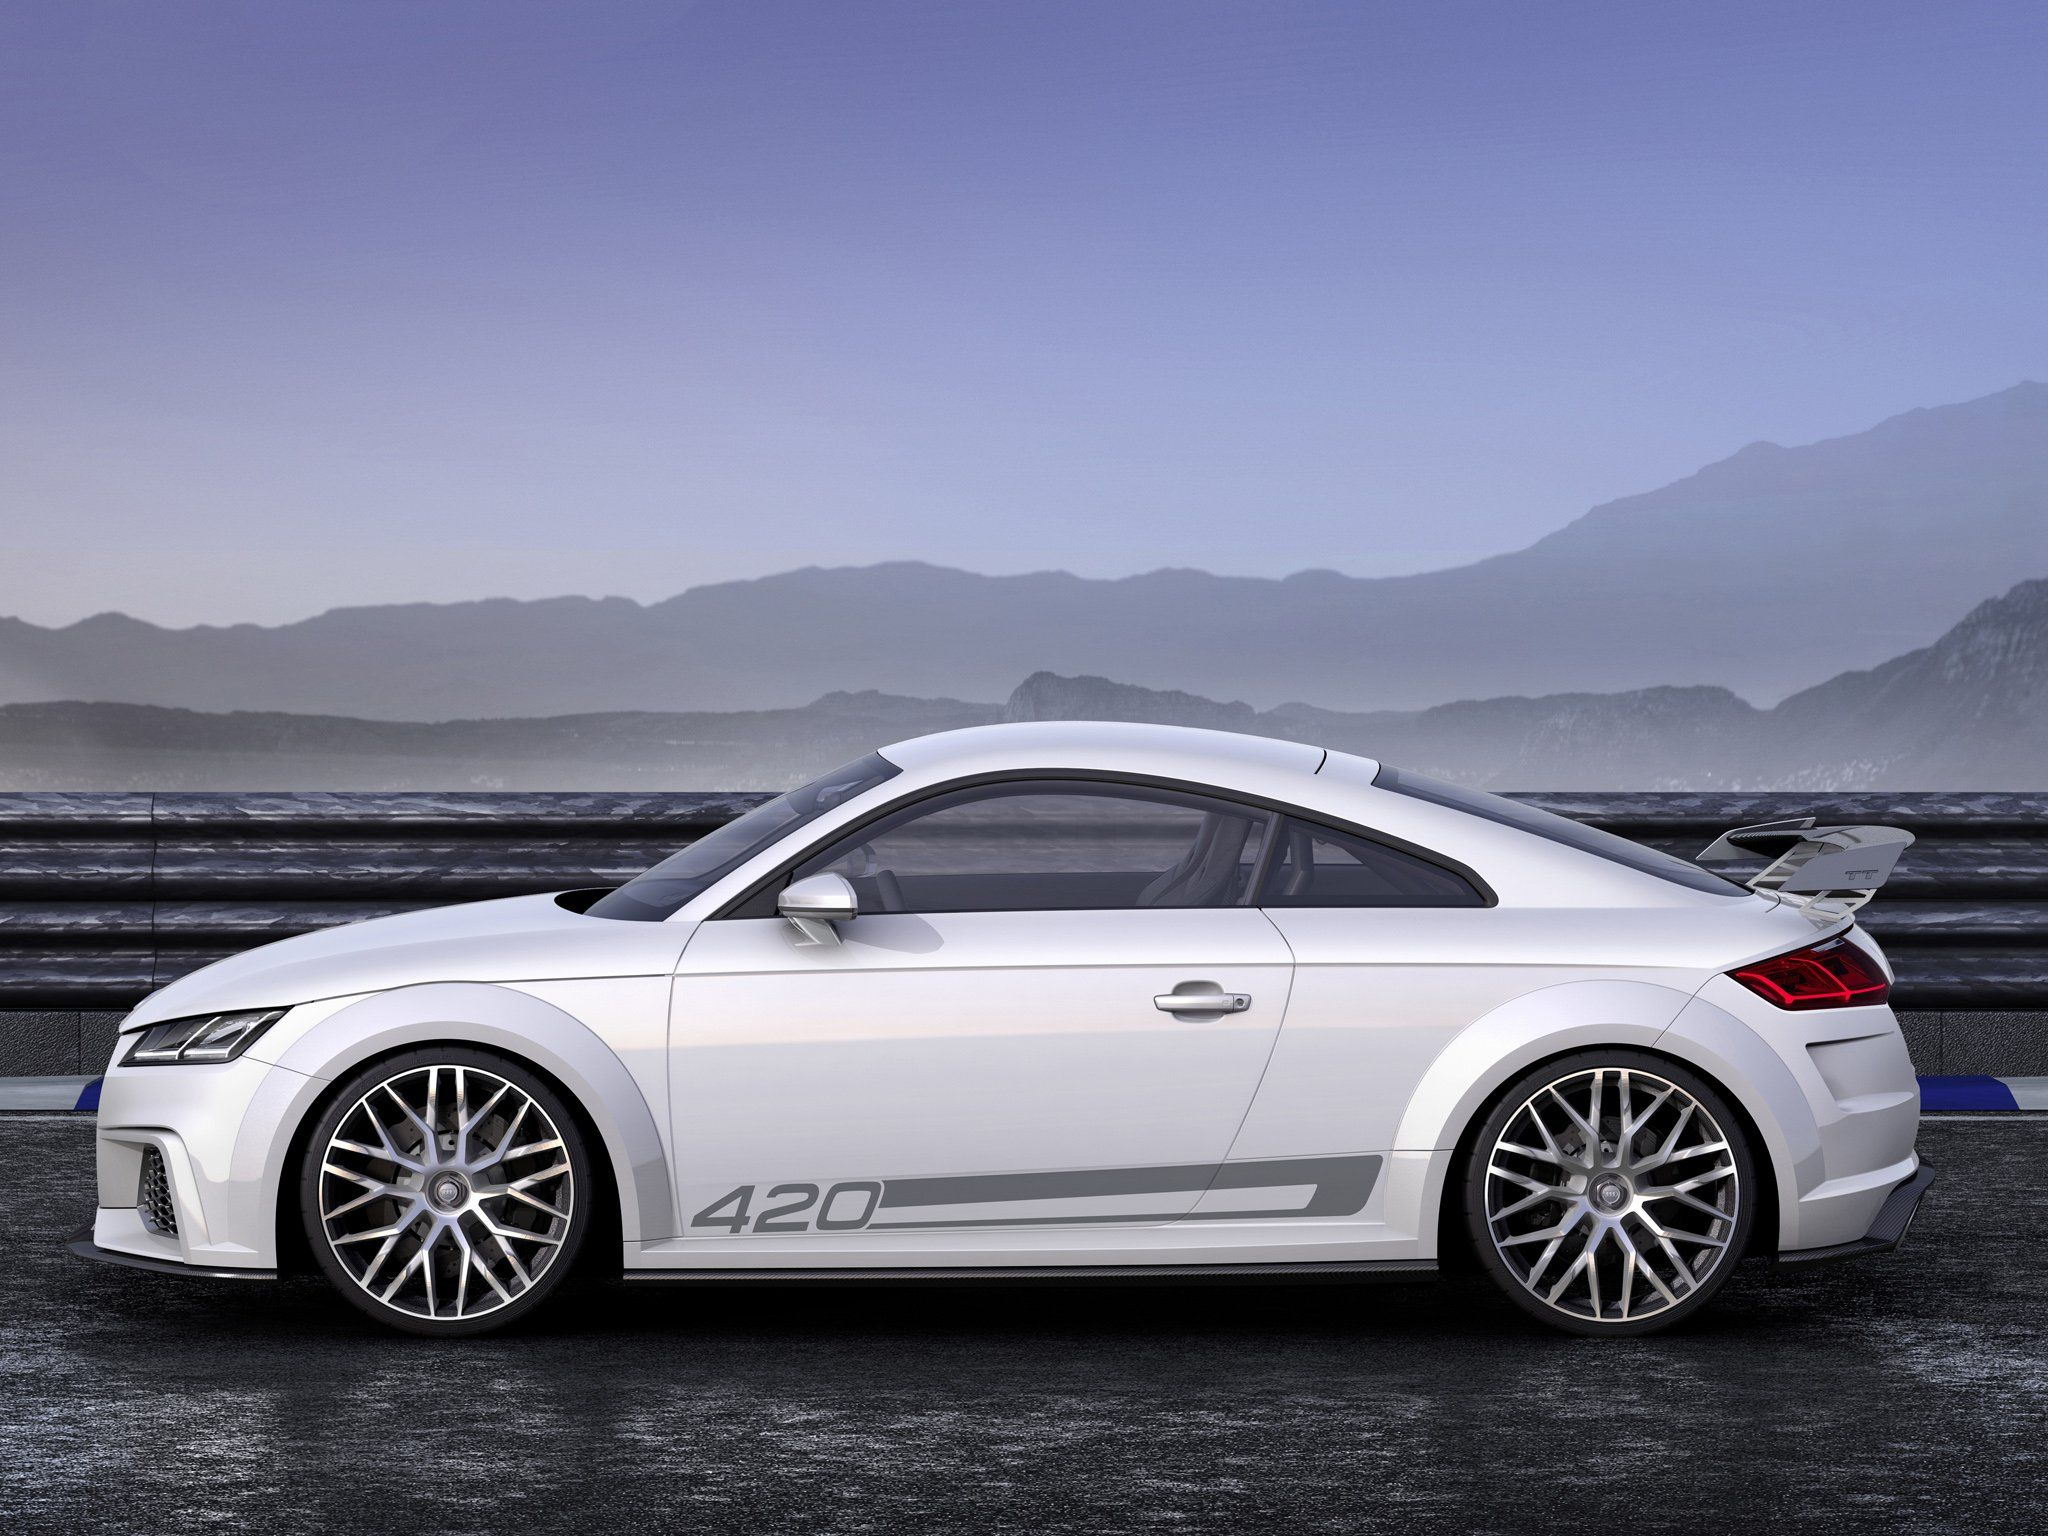 2015 Audi TT HD Background free download with HD quality image for your Computer, Laptop, Smartphone, Tablet